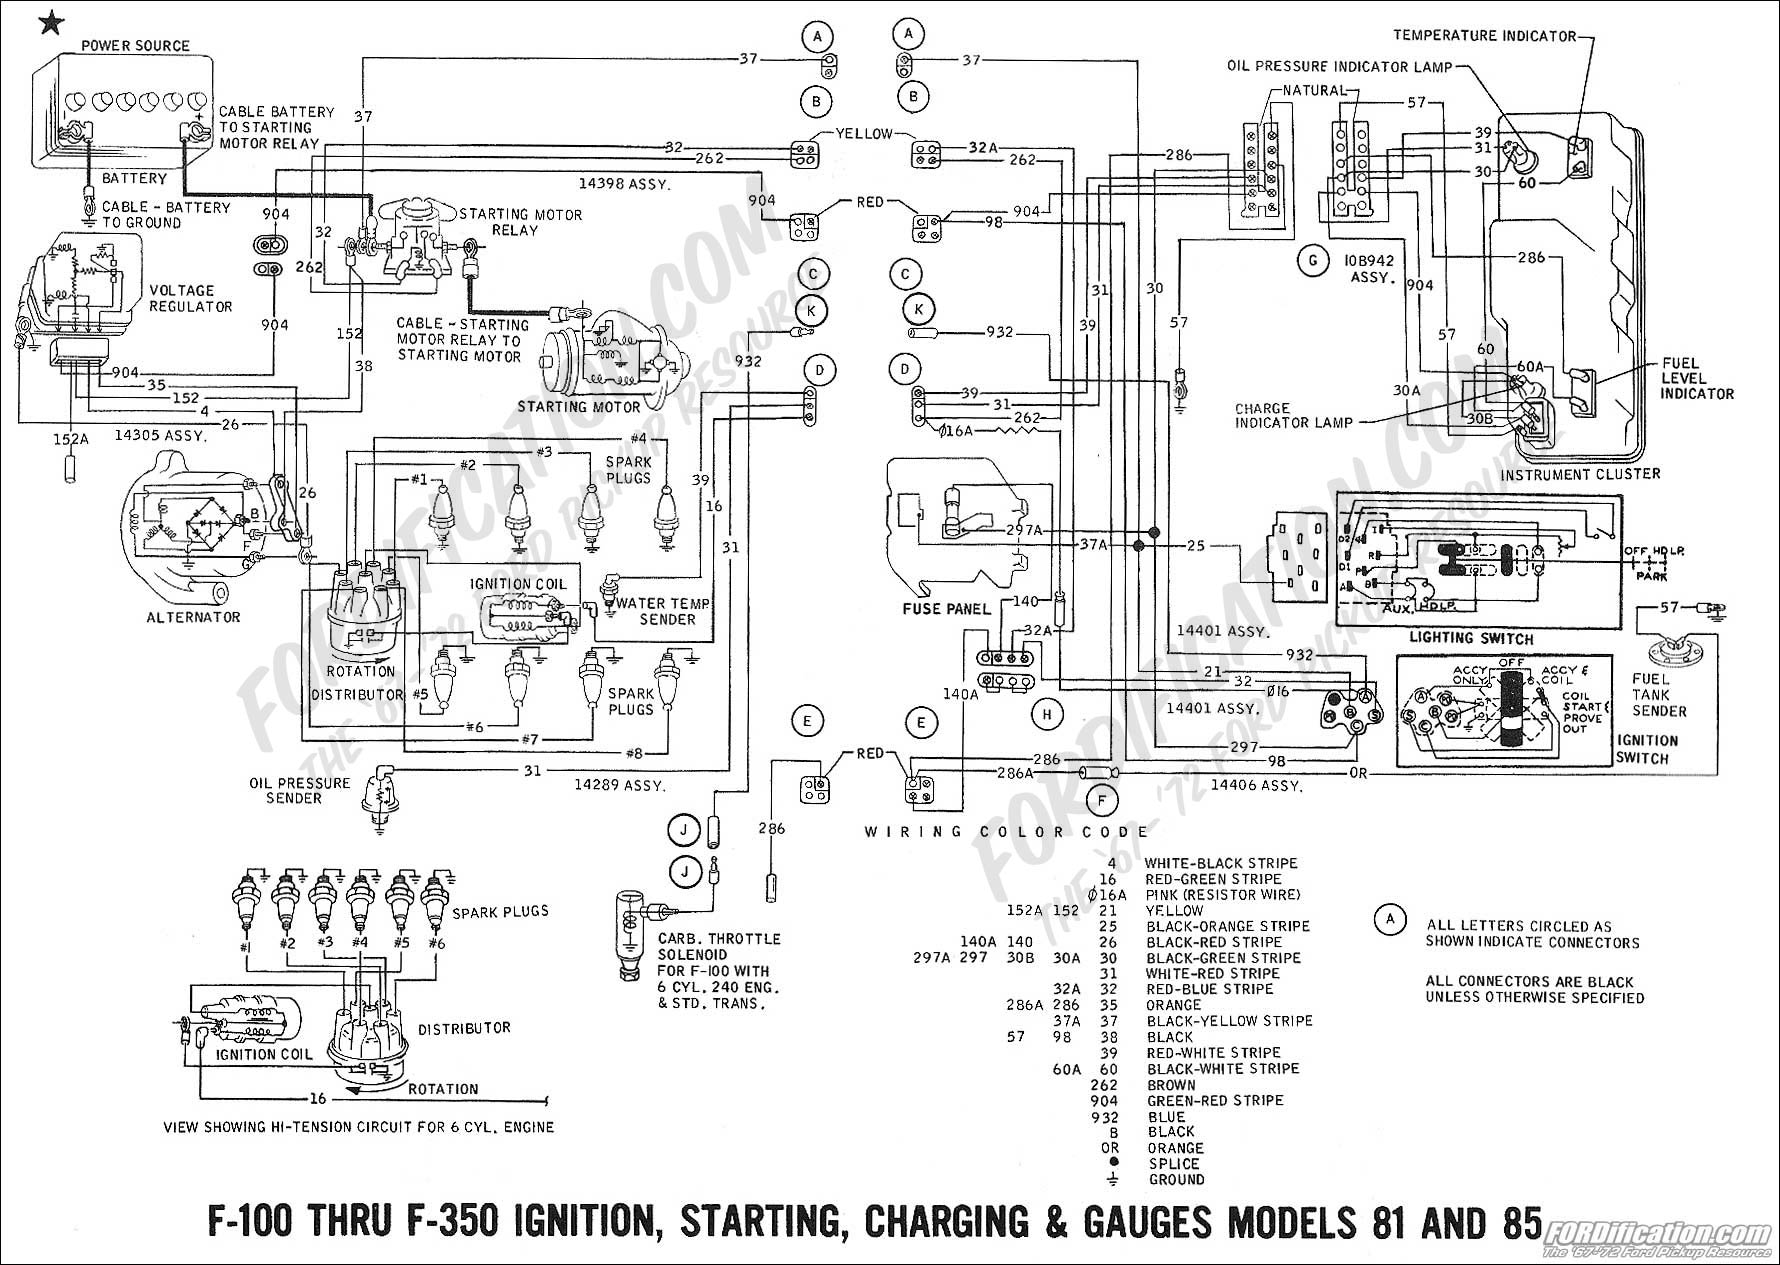 Amazing Ford Thunderbird Wiring Diagram 1956 Ford Truck Wiring Diagram Wiring Cloud Staixuggs Outletorg